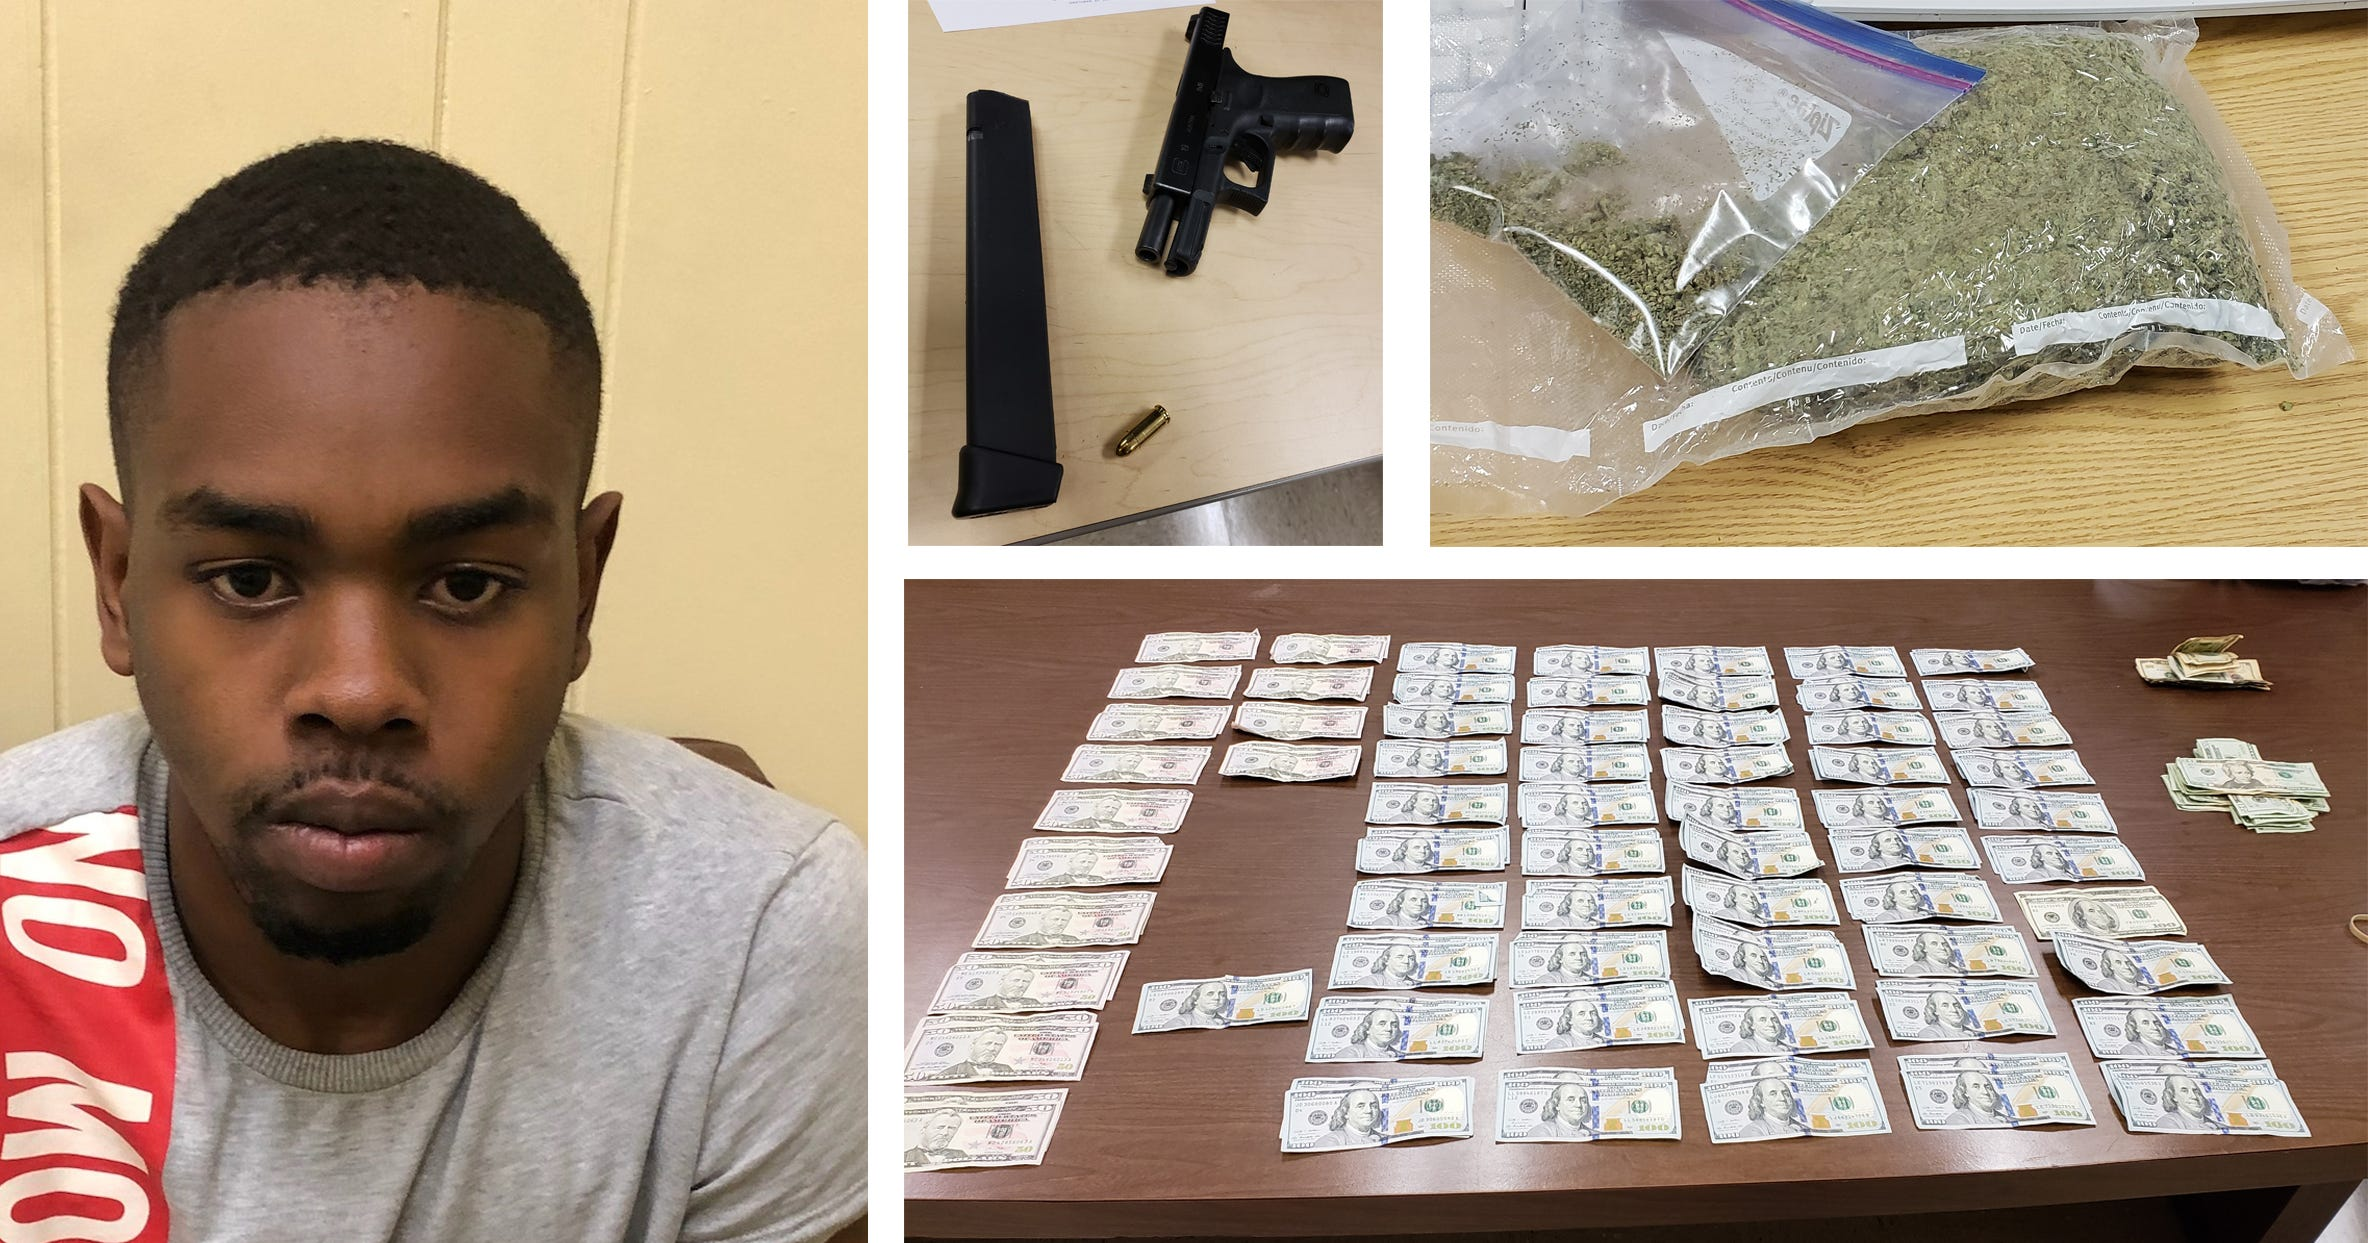 Man tried to take state driver's test in car containing pot, gun and $15k, police say